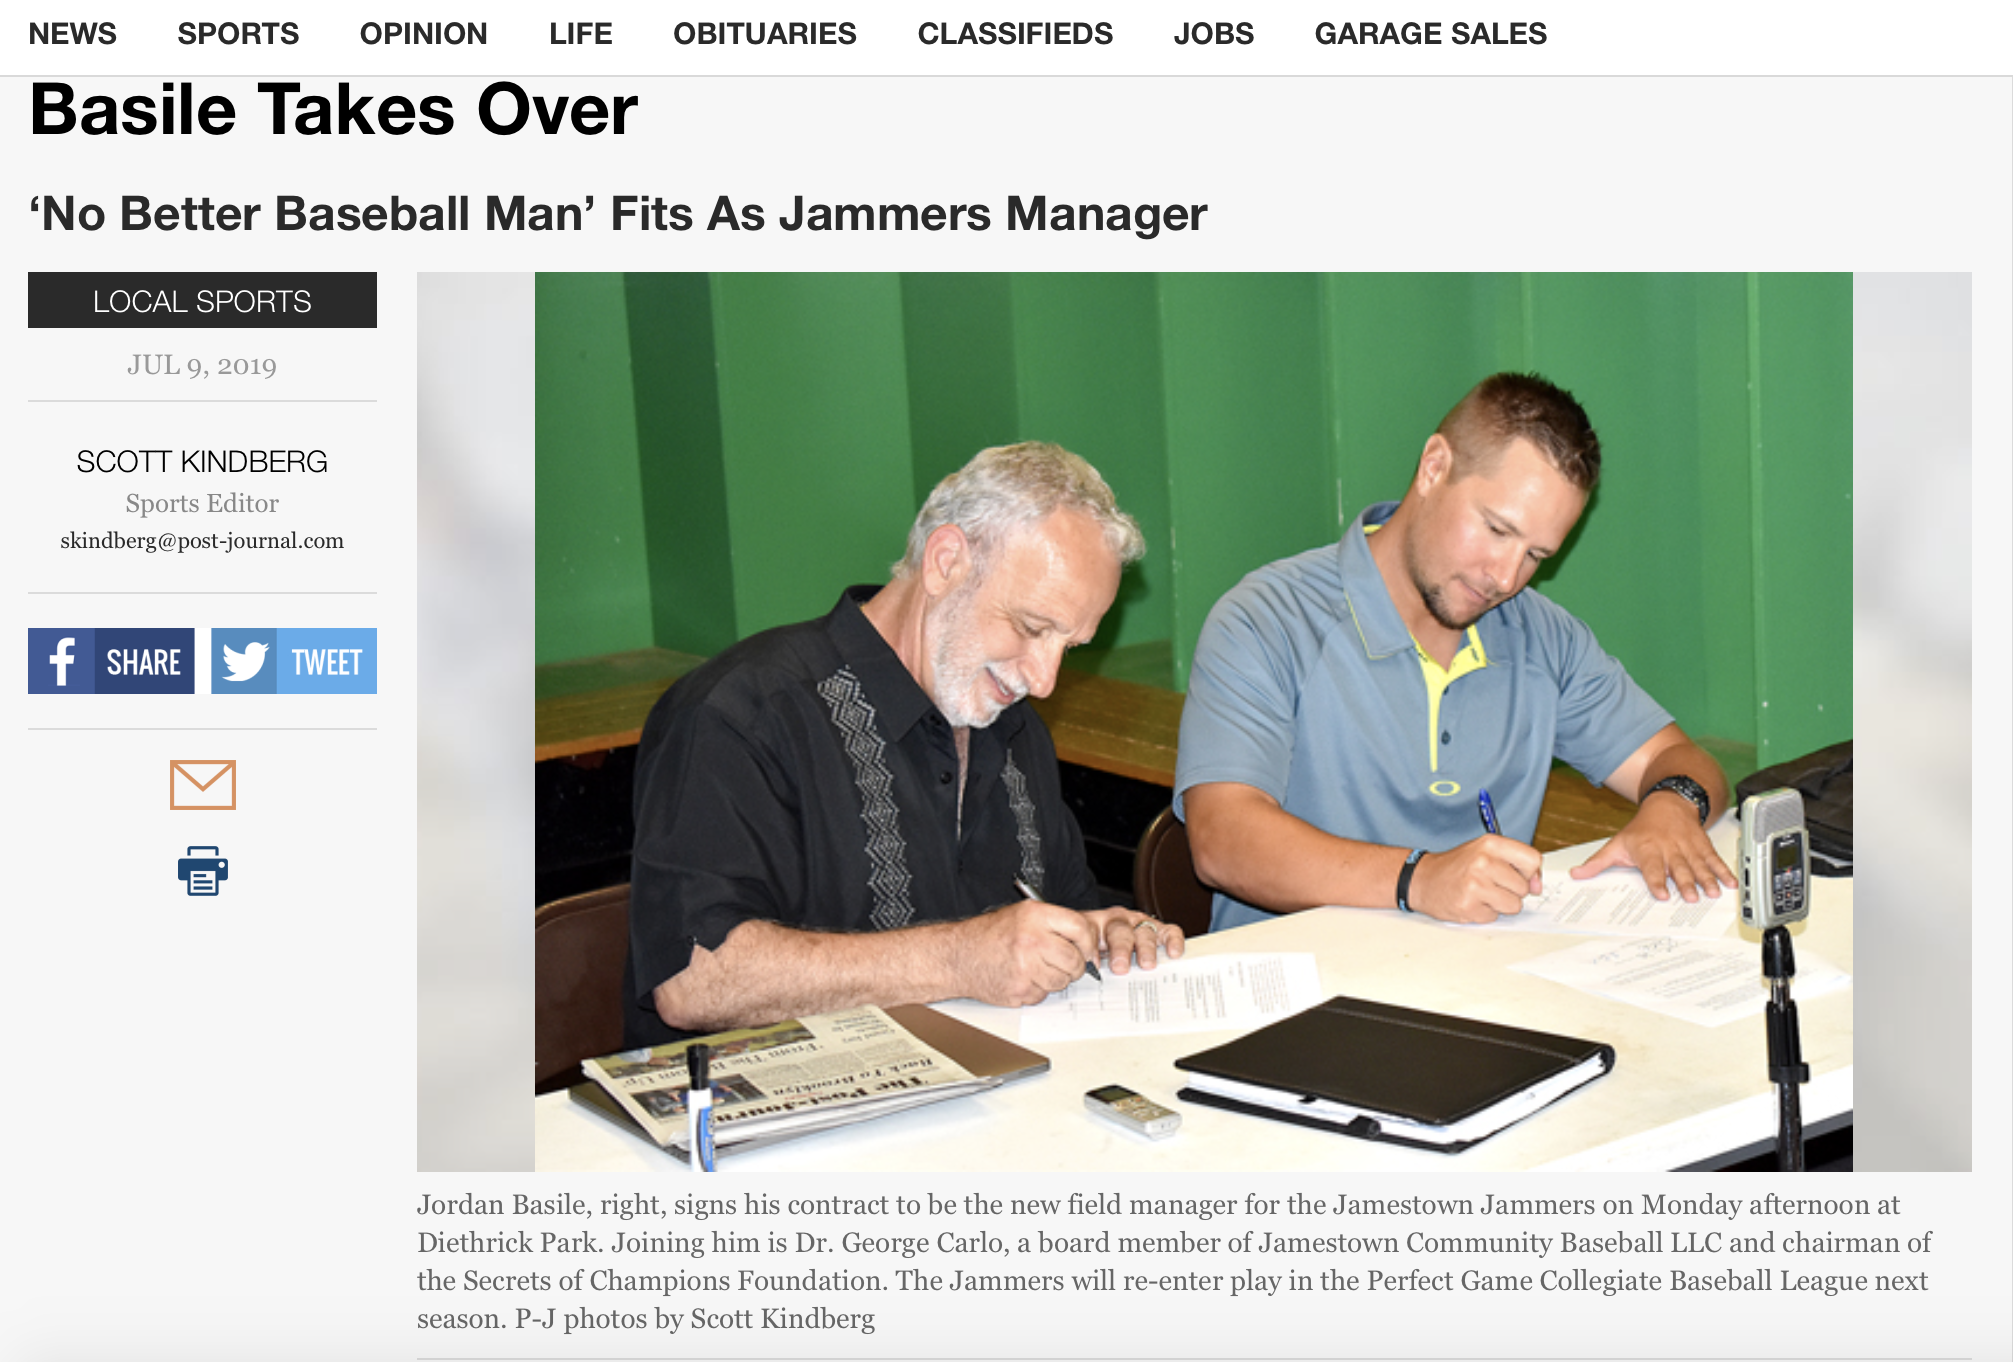 """When you get to a certain age, like me, you're able to sense when somebody has it,""  Carlo said during a press conference Monday at Diethrick Park announcing Basile as the new manager of the Jamestown Jammers.  ""It was very clear from the beginning that Jordan had that sense of the game. He had it."""